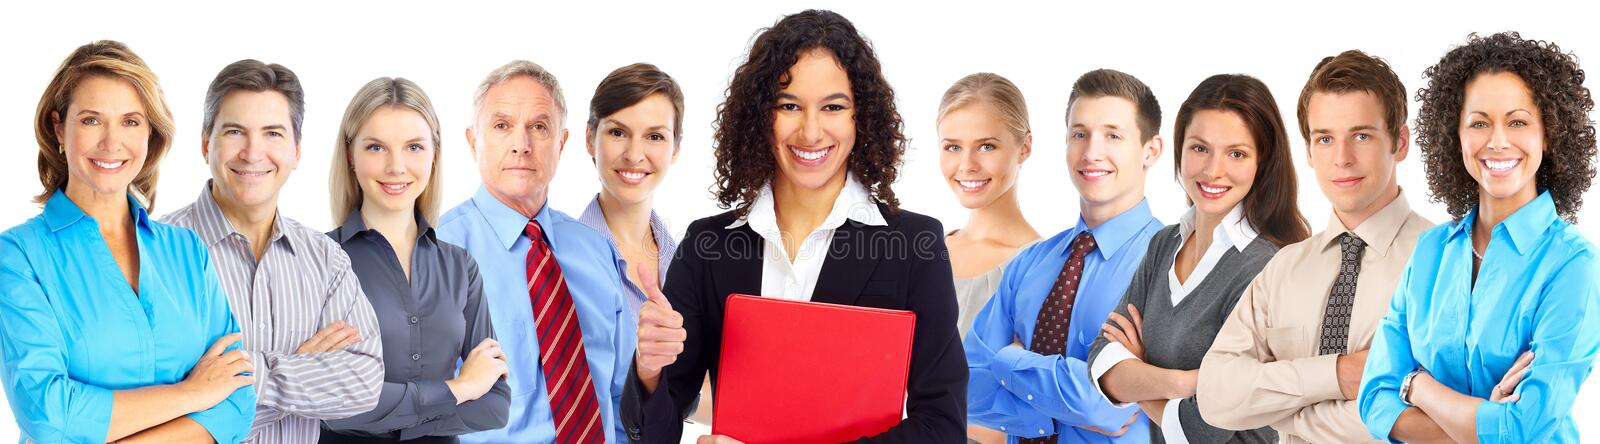 Business team. stock images